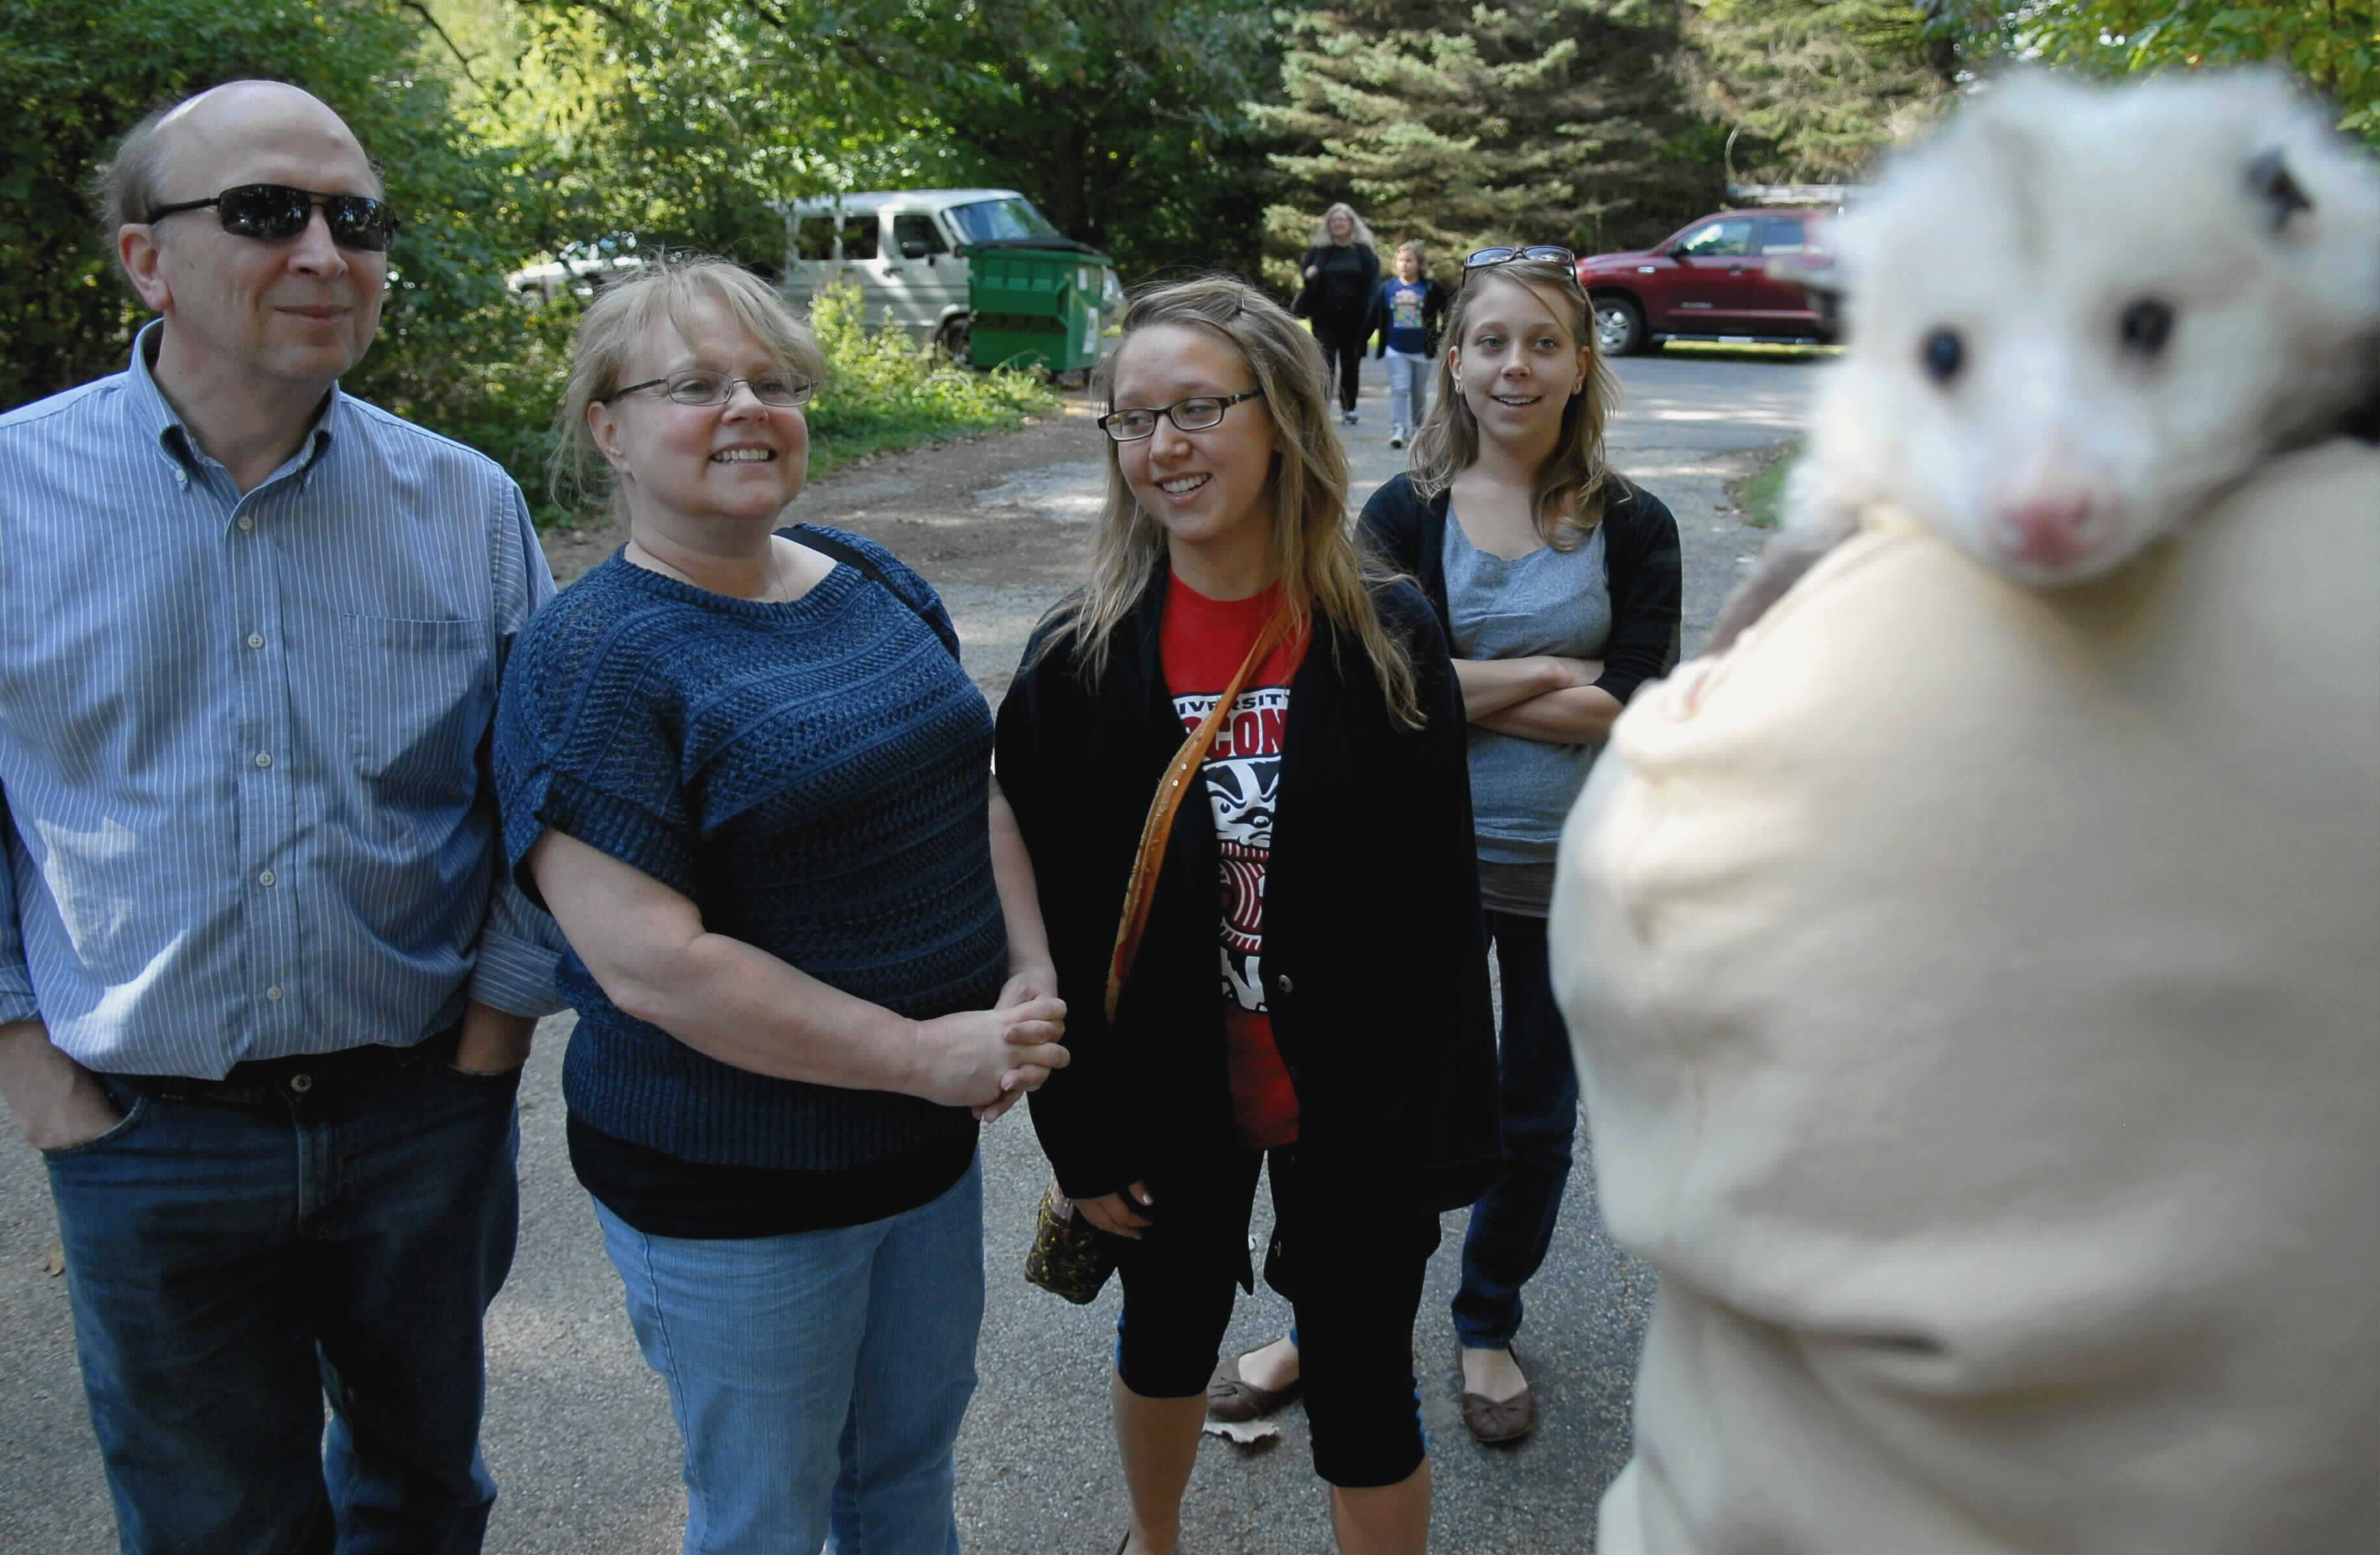 From left to right, Don Becker, Pam Becker, Laura Becker, 17, and Amy Becker look at a possum during an open house Sunday at the Fox Valley Wildlife Center in Elburn. Laura Becker, who volunteers once a week at the center, brought her family to the open house.